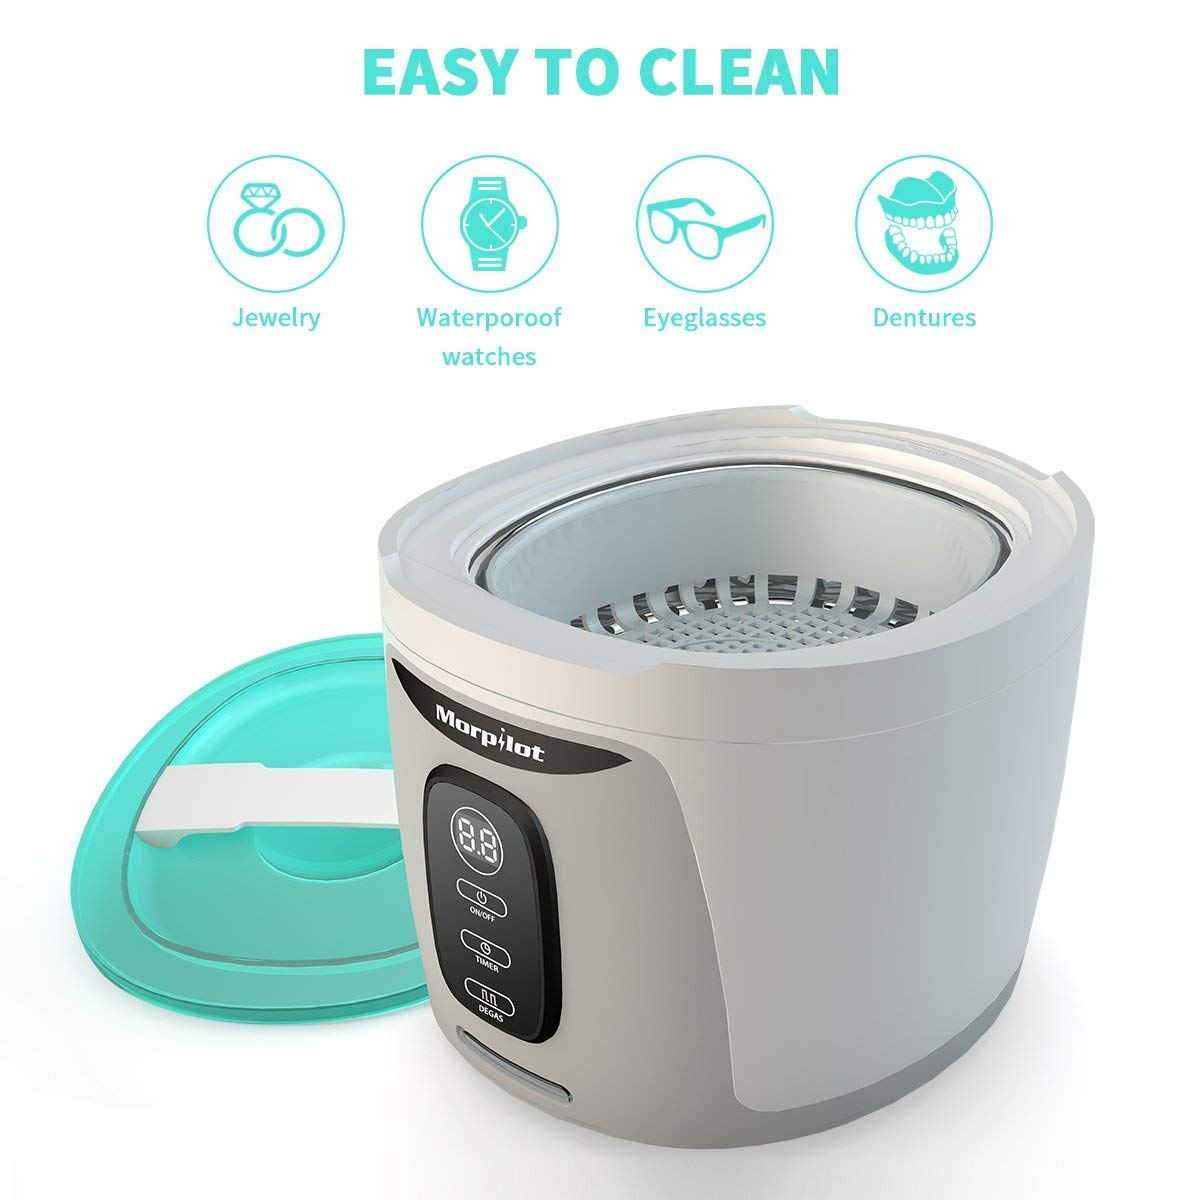 Morpilot Ultrasonic Cleaner 750ML Professional Sonic Washing Machine forJewelry,Eyeglasses, Rings, Coins,Dentures, Retainers, and Mouth Guards with UV Germicidal Lamp & Digital Timer